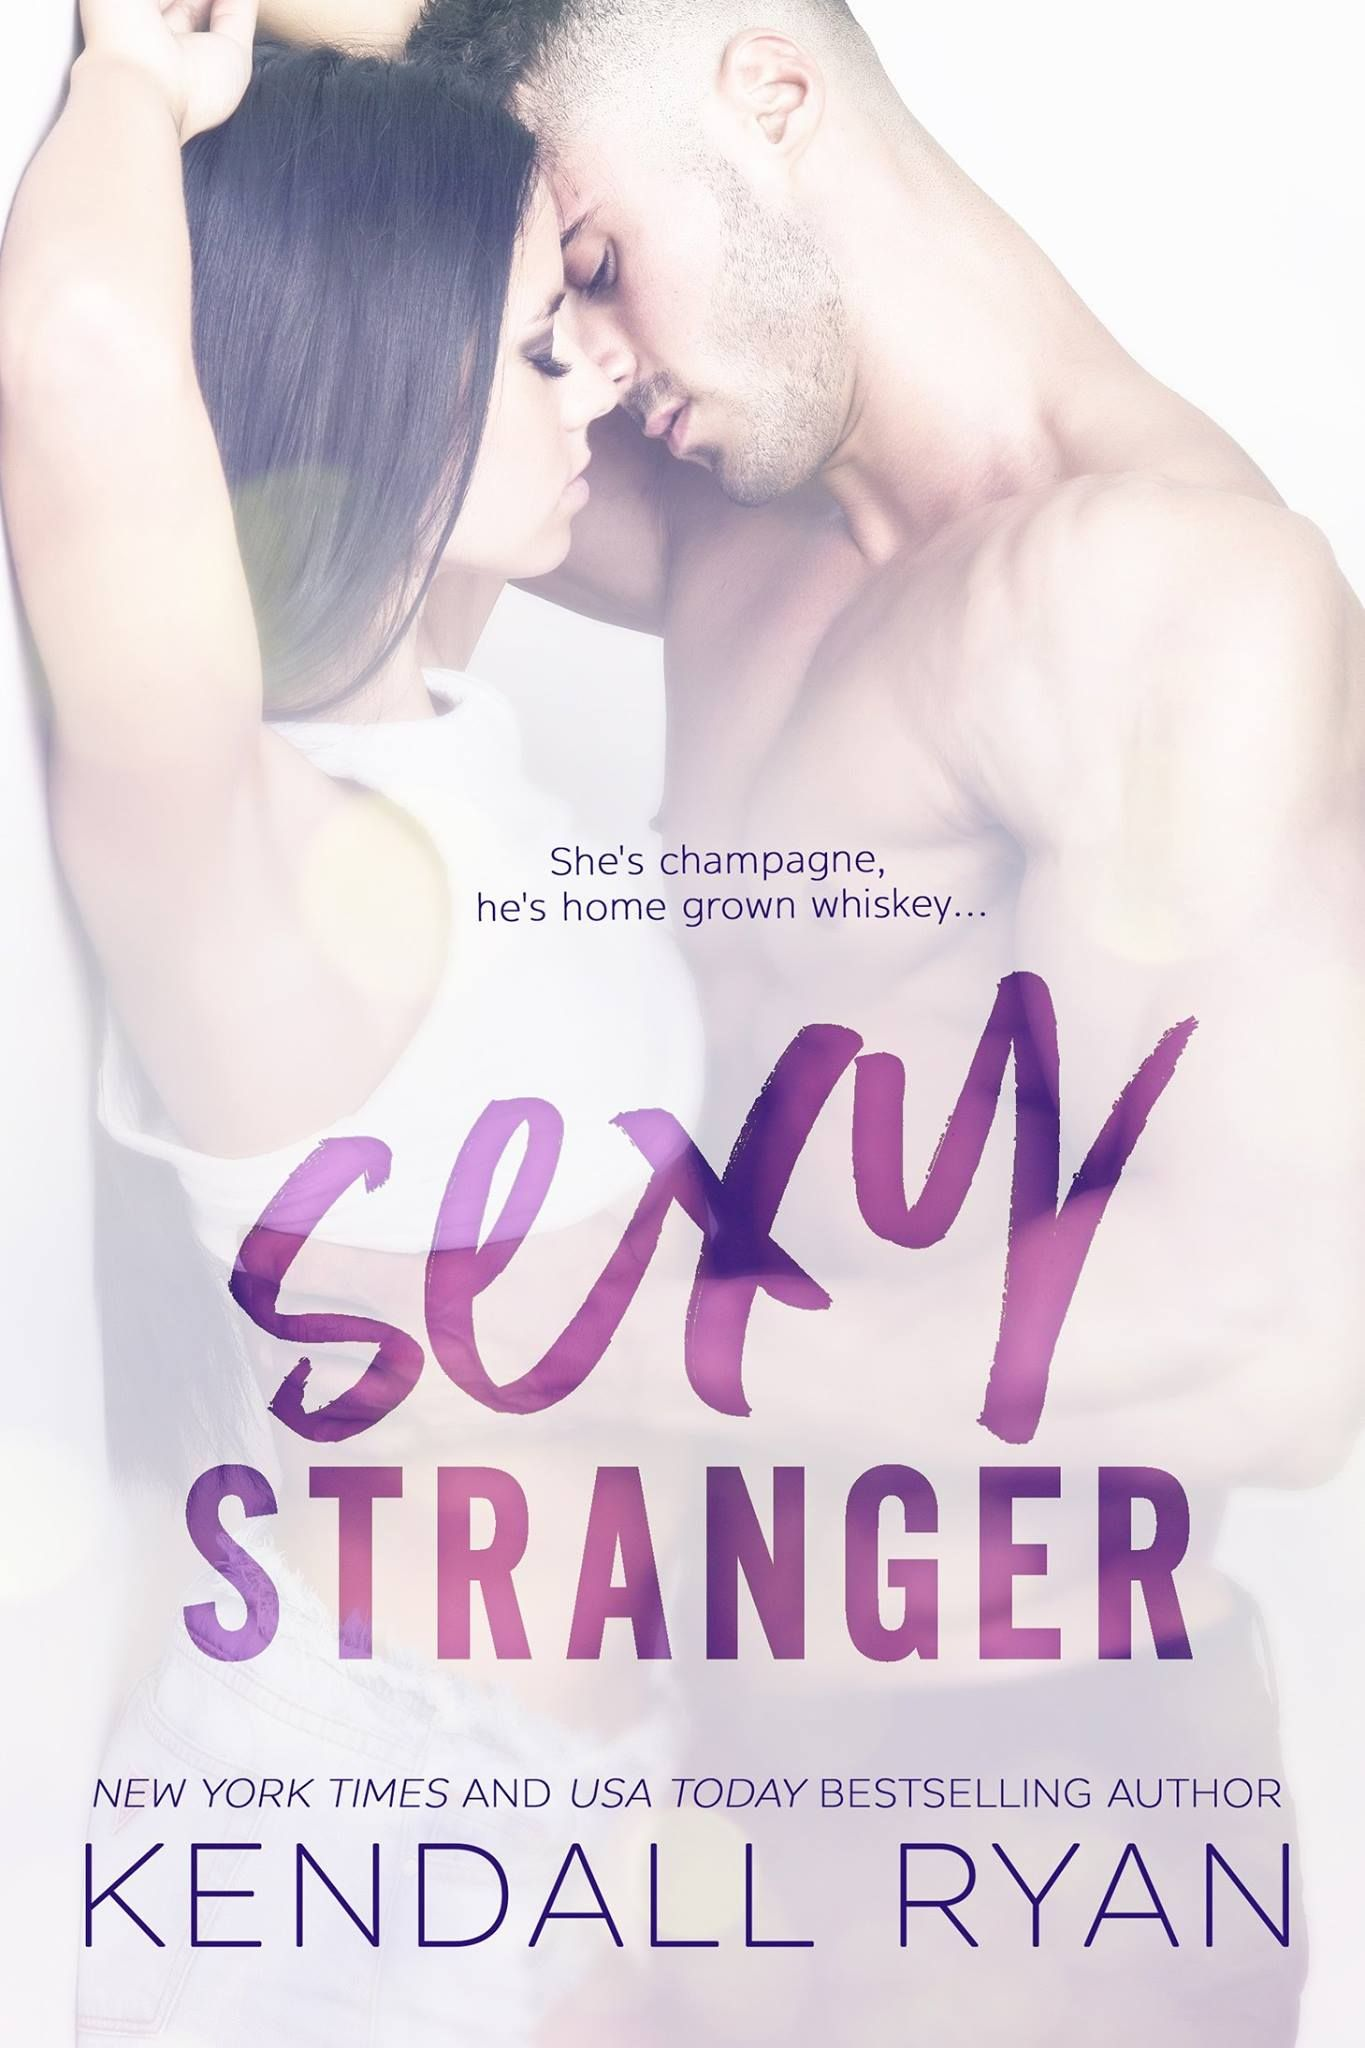 Kendall Ryan Libros Sexy Stranger By Kendall Ryan Release Date May 23rd 2017